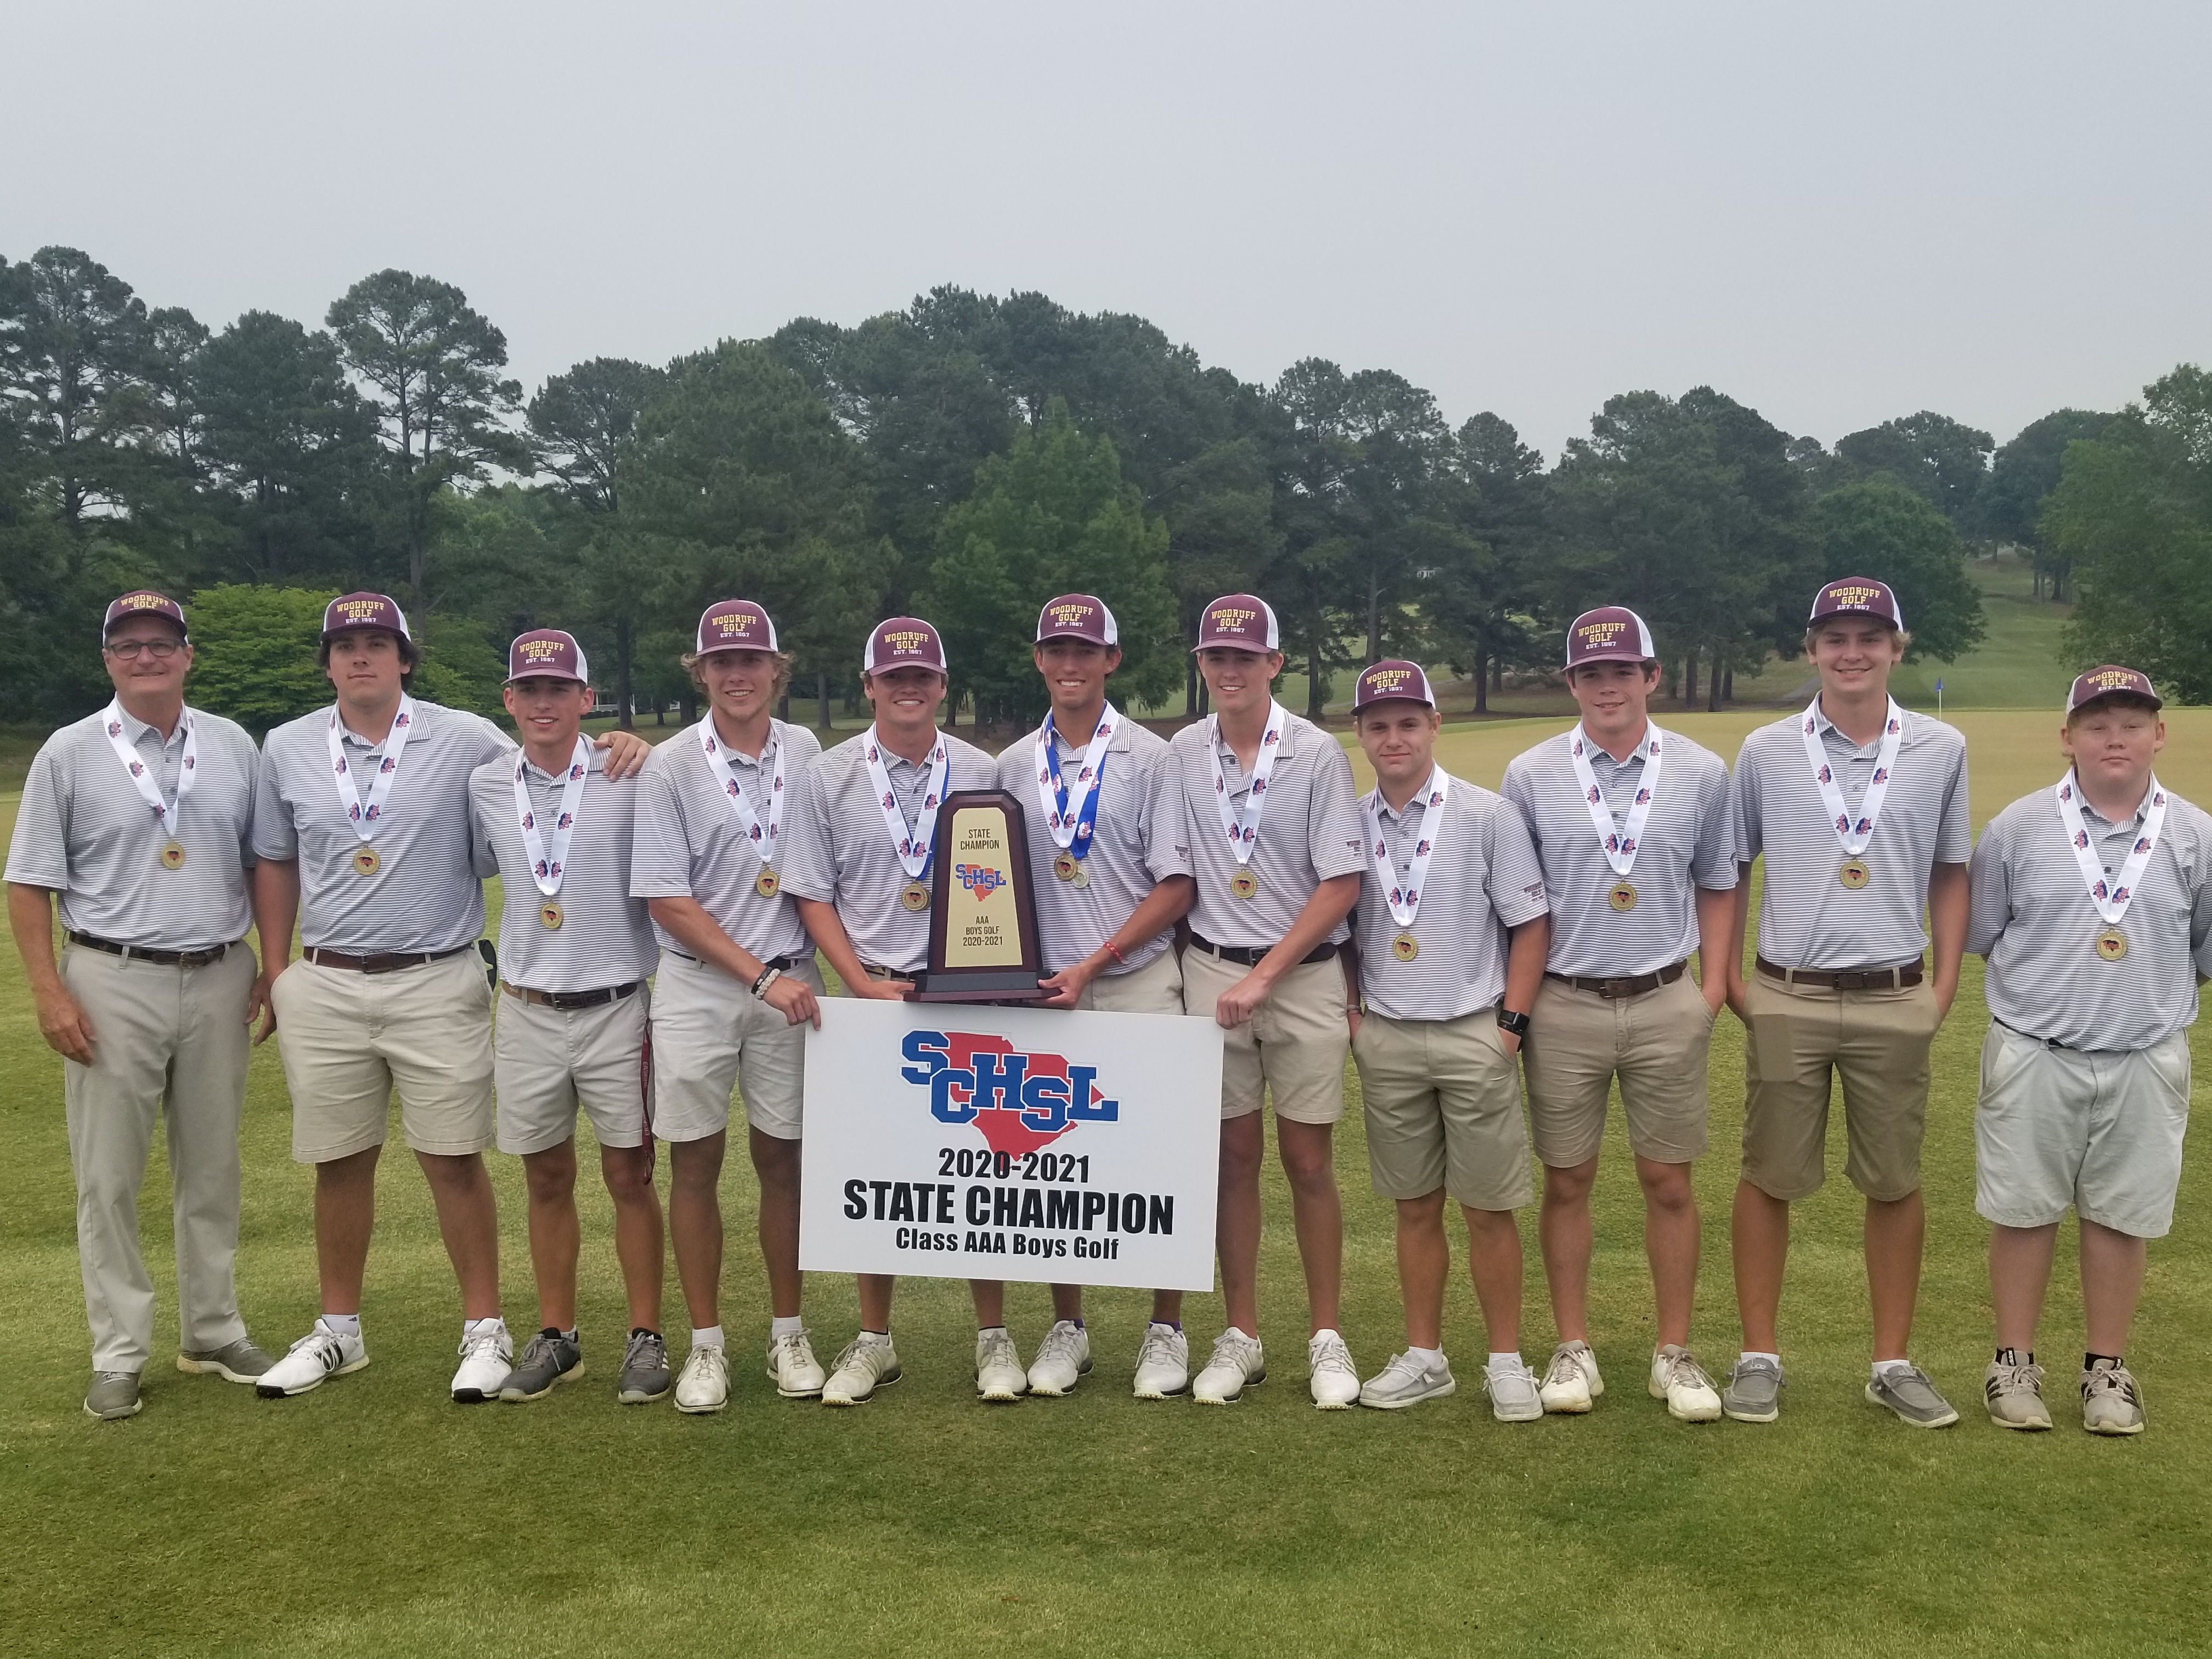 Checkmate! Wolverine Golf Team Wins 3A State Championship over Battling Bishops, Captures First Team Title for Woodruff High in 20 years